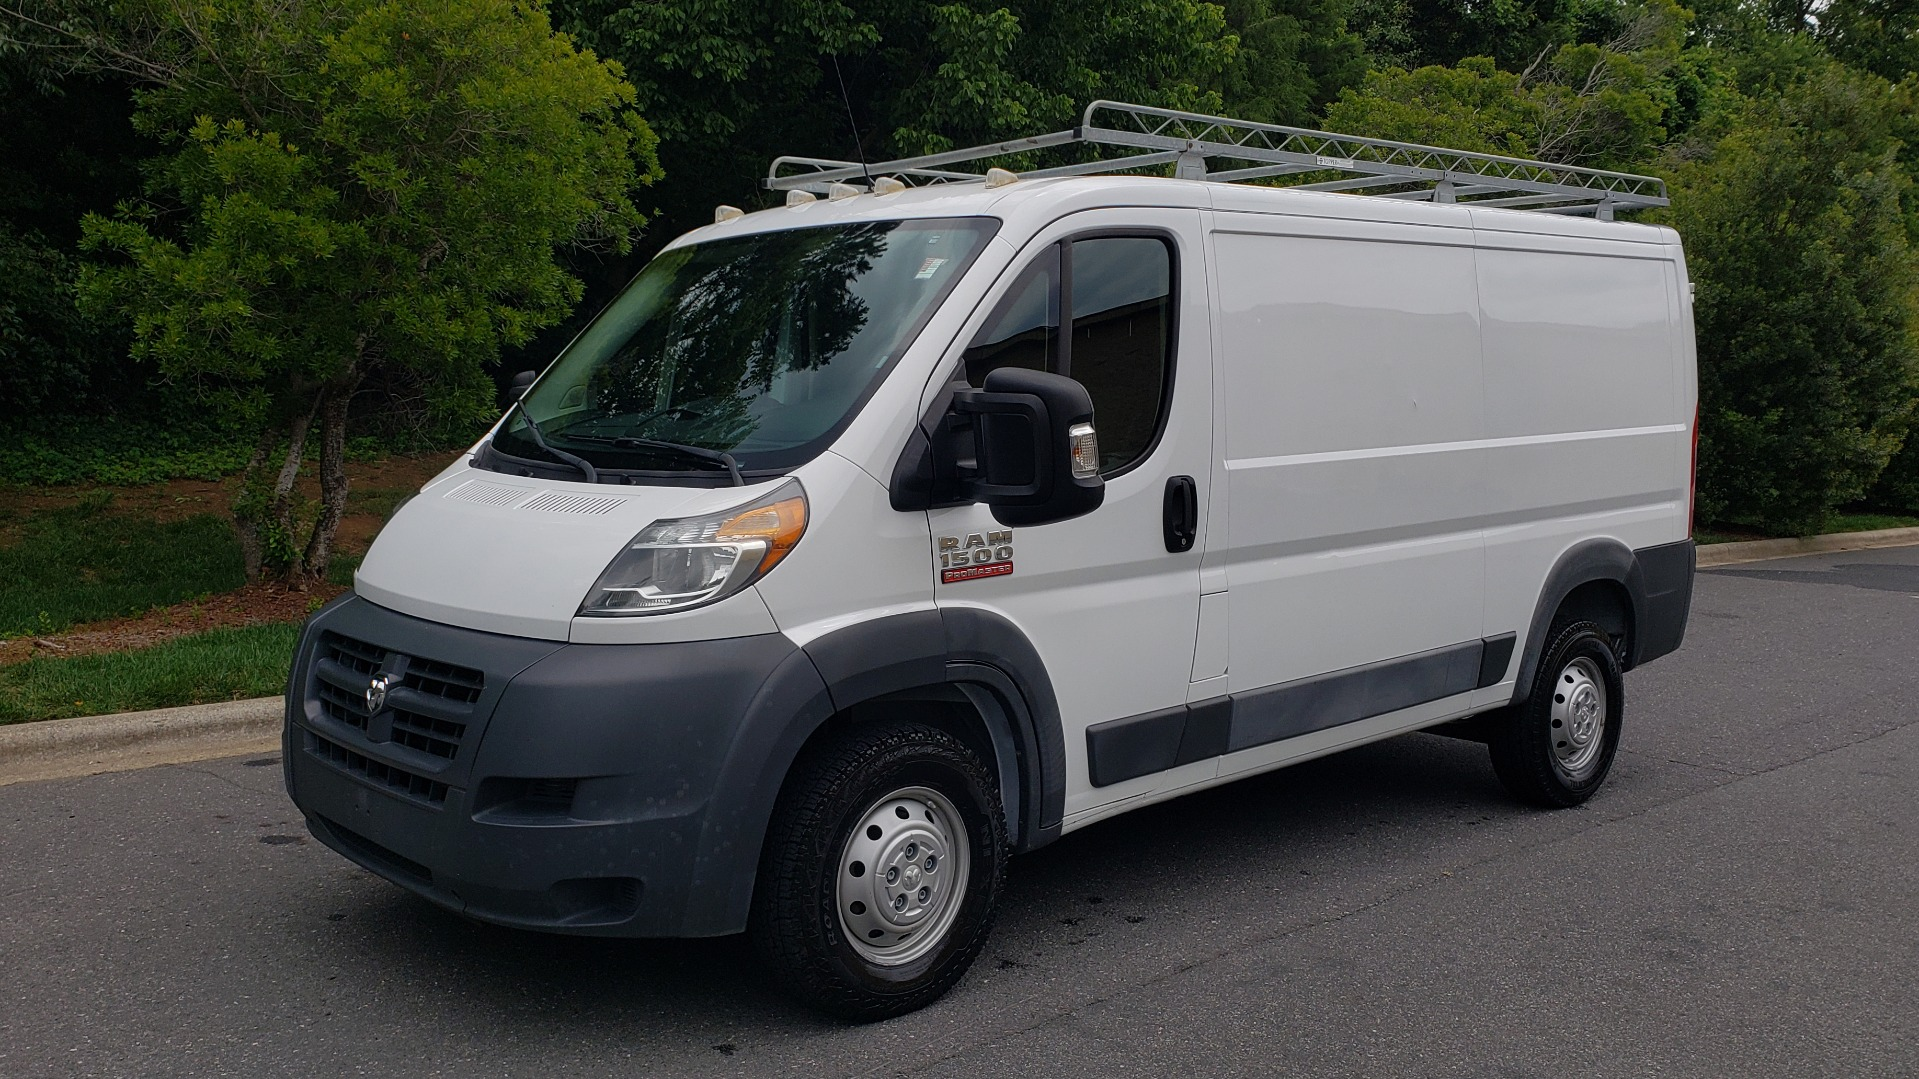 Used 2016 Ram PROMASTER CARGO VAN 136 WB / 3.6L V6 / AUTO / ROOF-RACK / REARVIEW / SEATS 5 for sale $15,995 at Formula Imports in Charlotte NC 28227 1